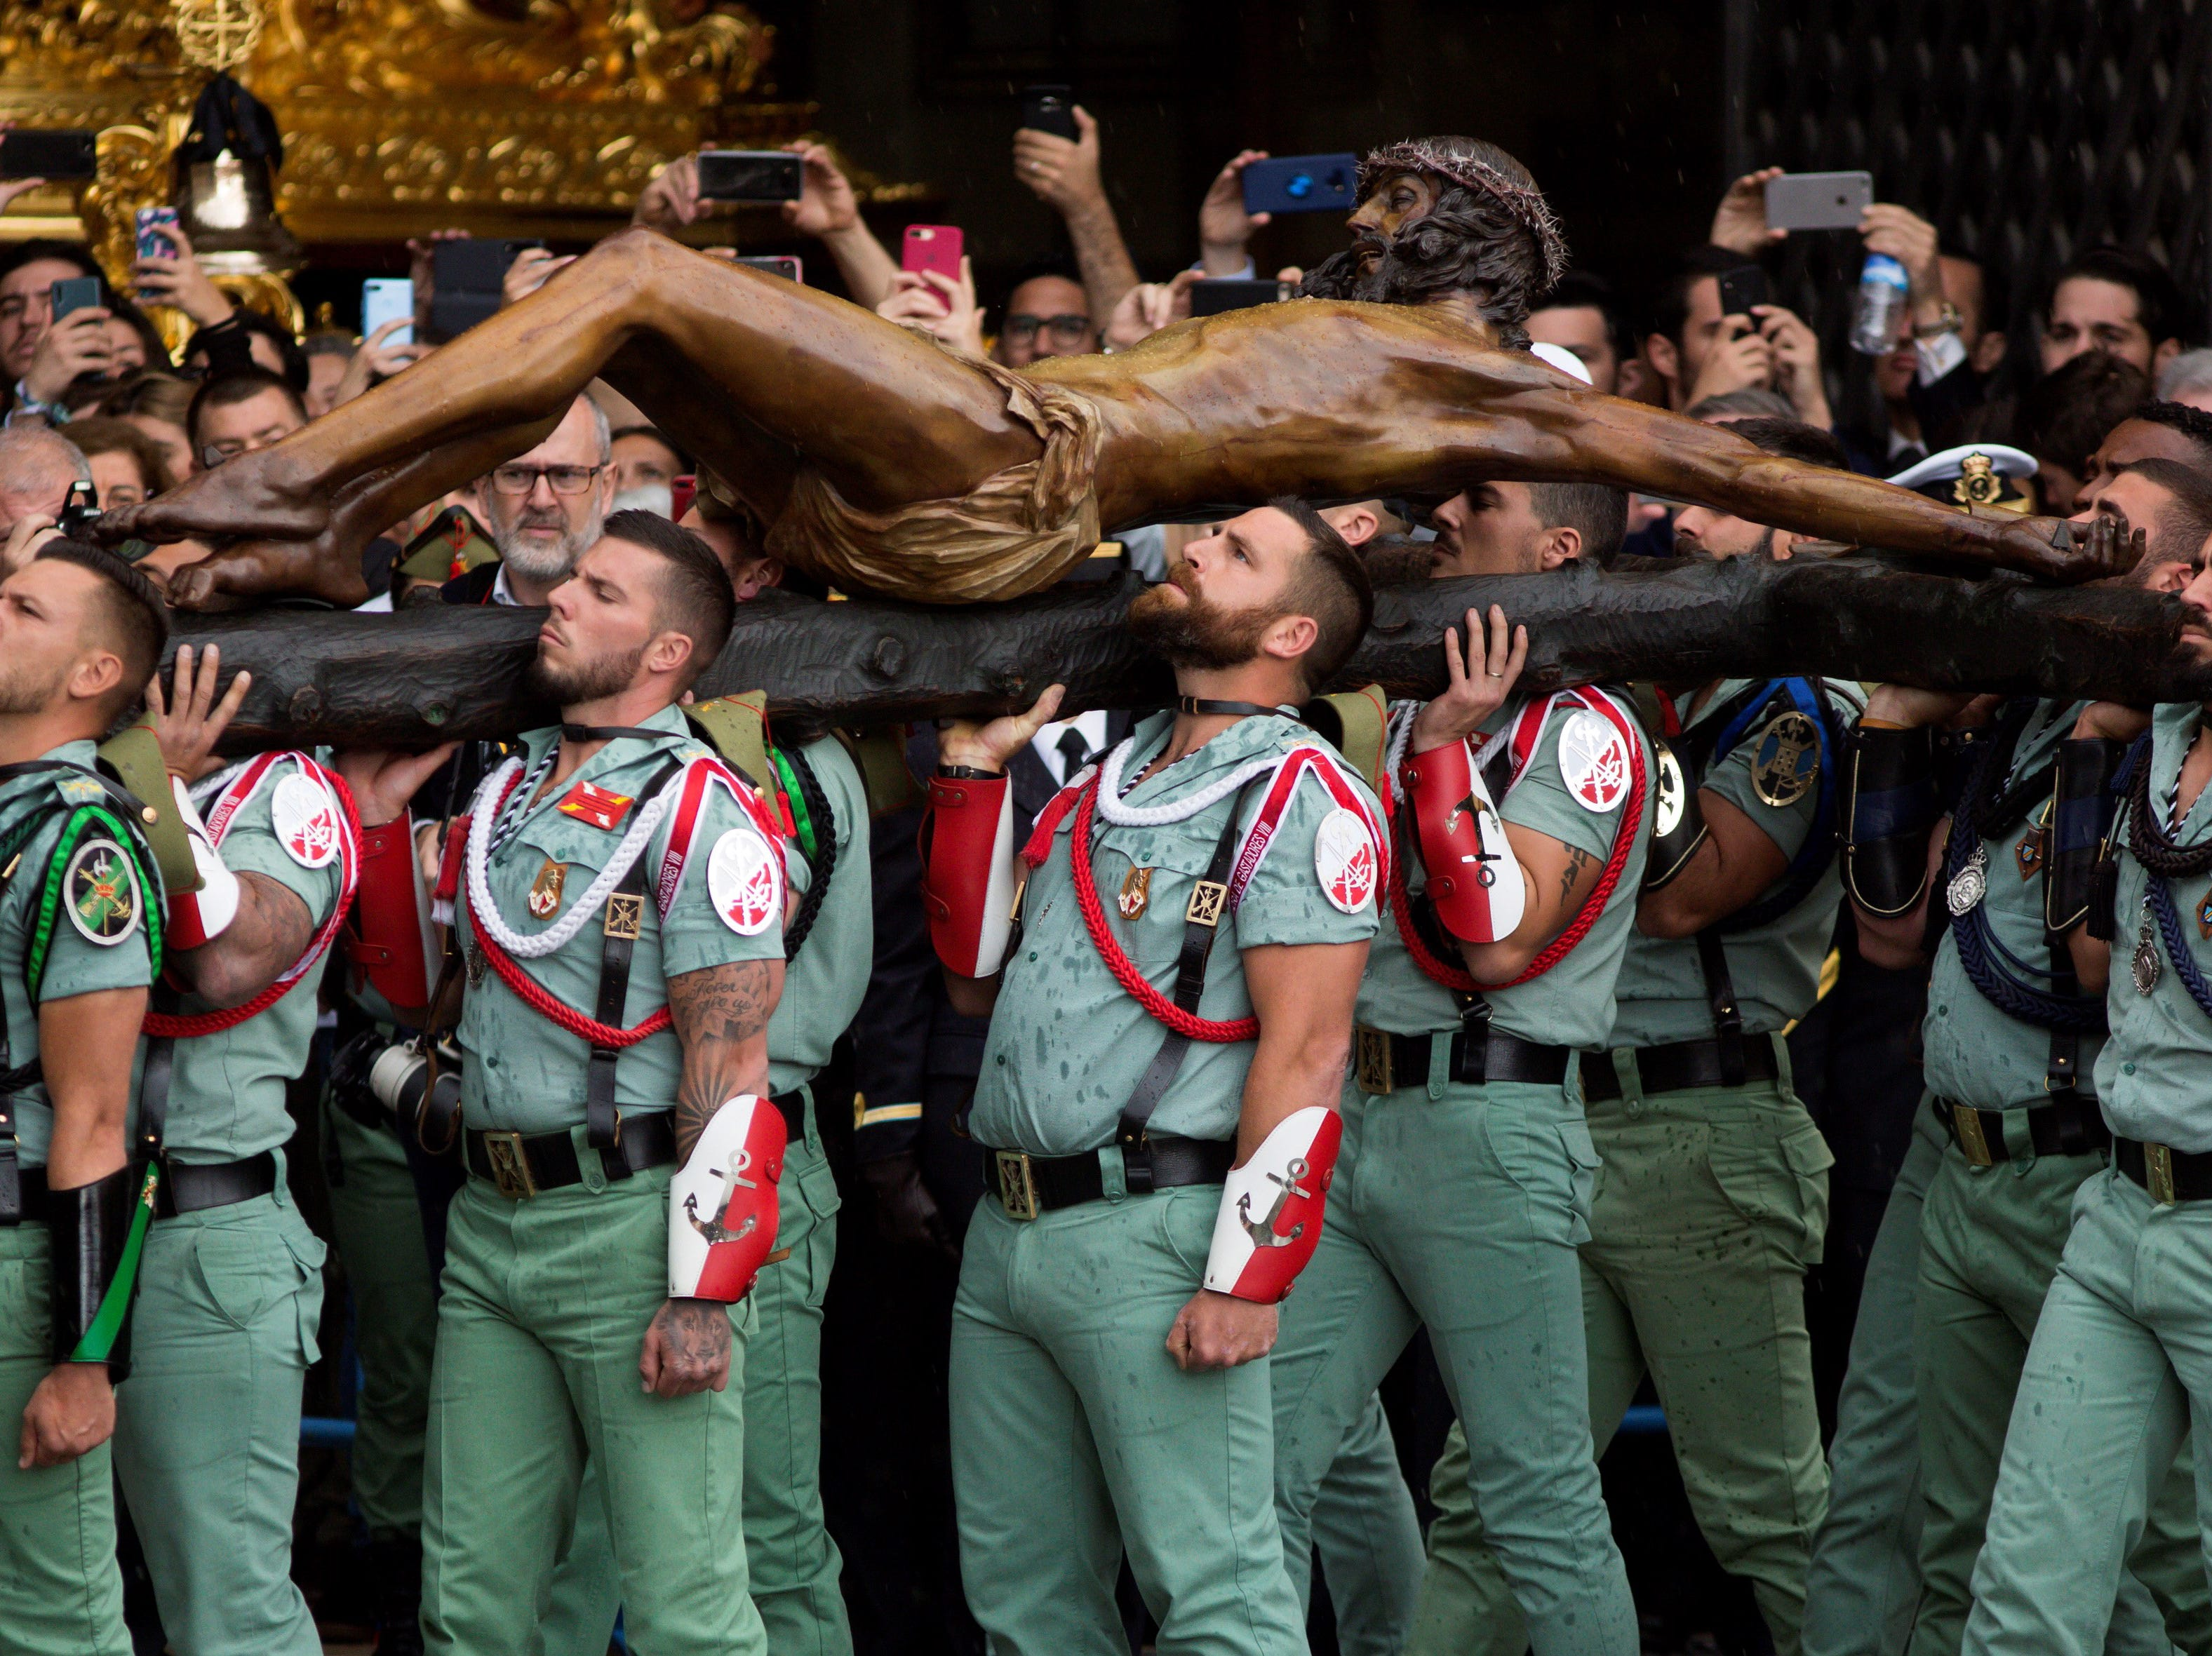 Legionaries carry the Christ of the Good Death in preparation for its procession in Malaga, Spain on April 18, 2019. Legionaries carry the Christ to its 'throne' before the start of the procession later in the day.